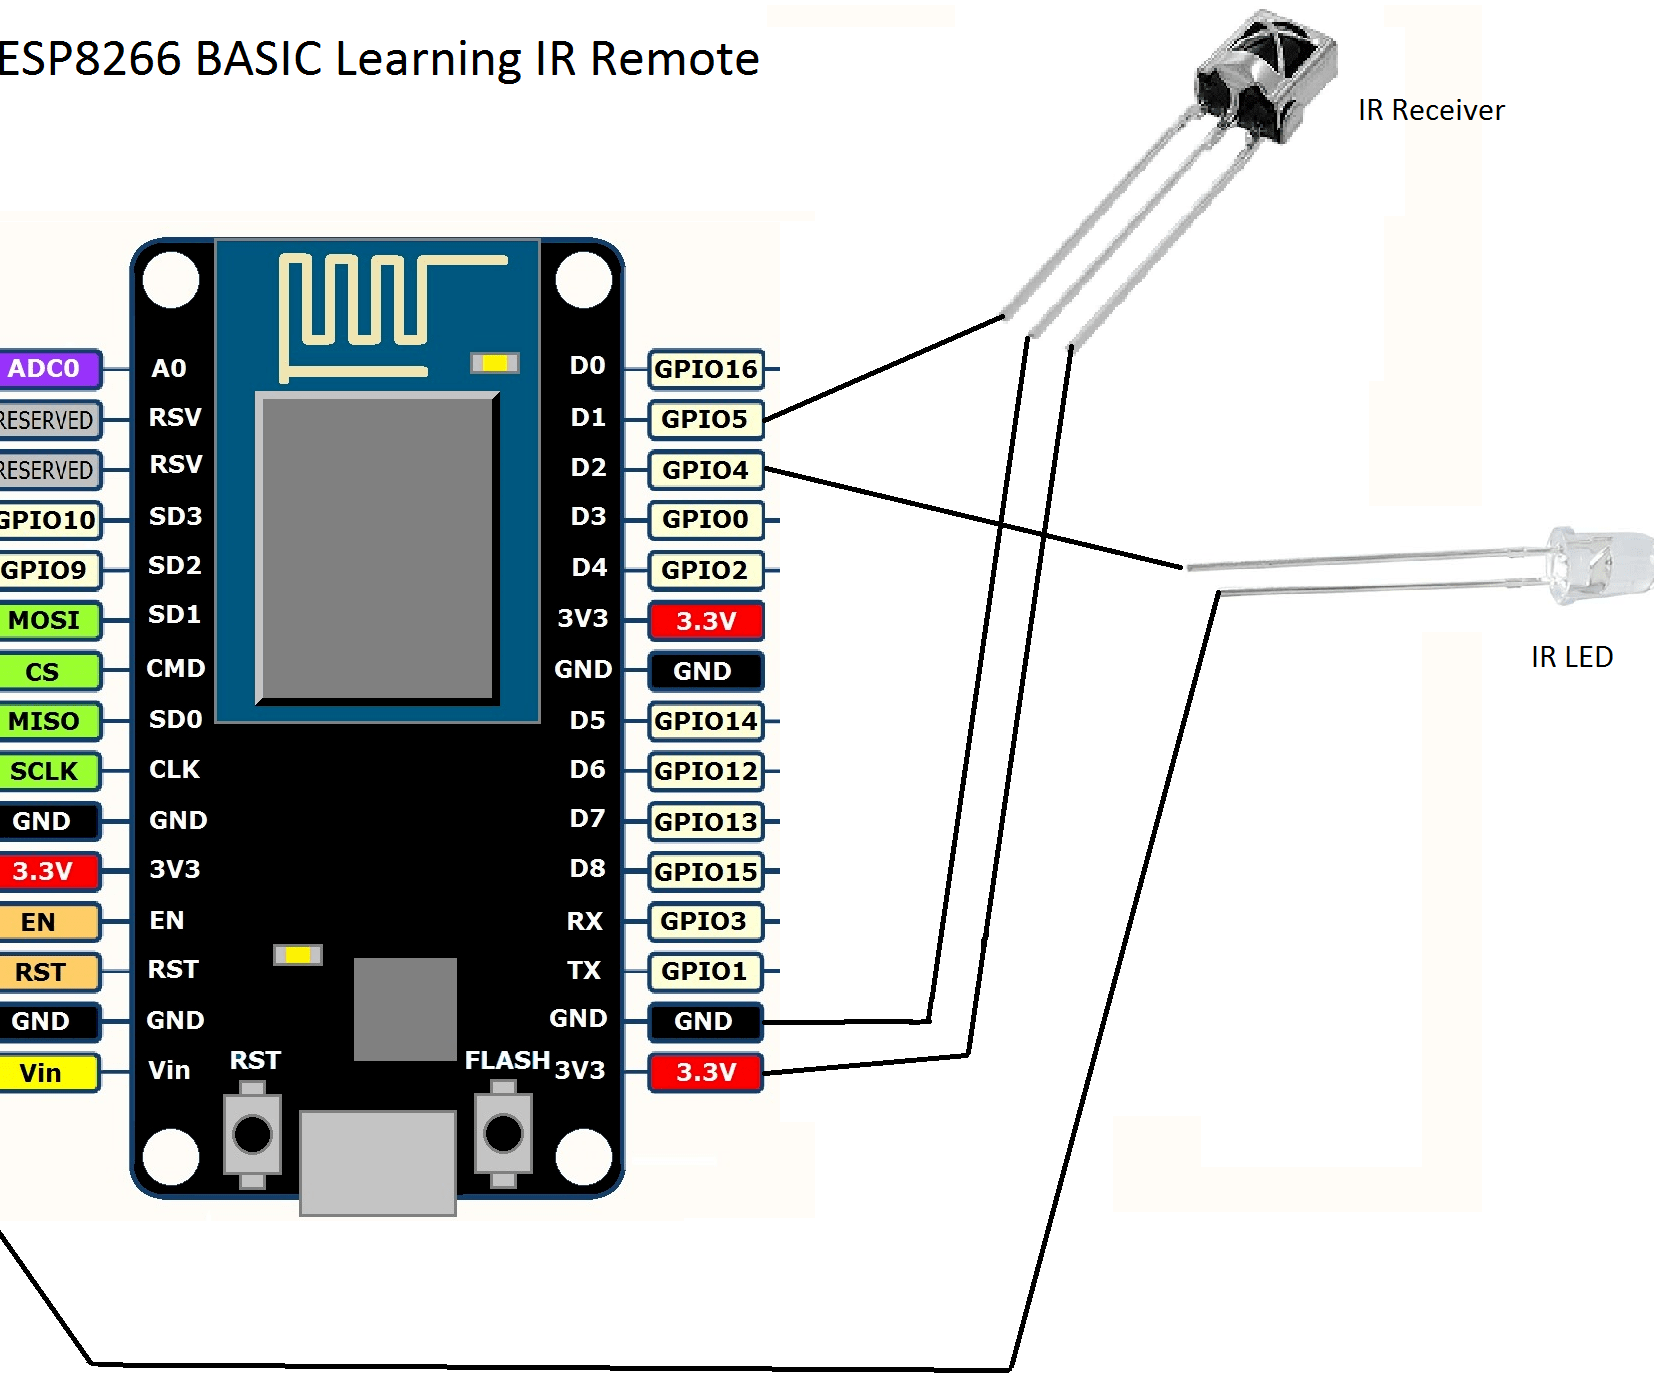 hight resolution of easiest esp8266 learning ir remote control via wifi 4 steps with pictures